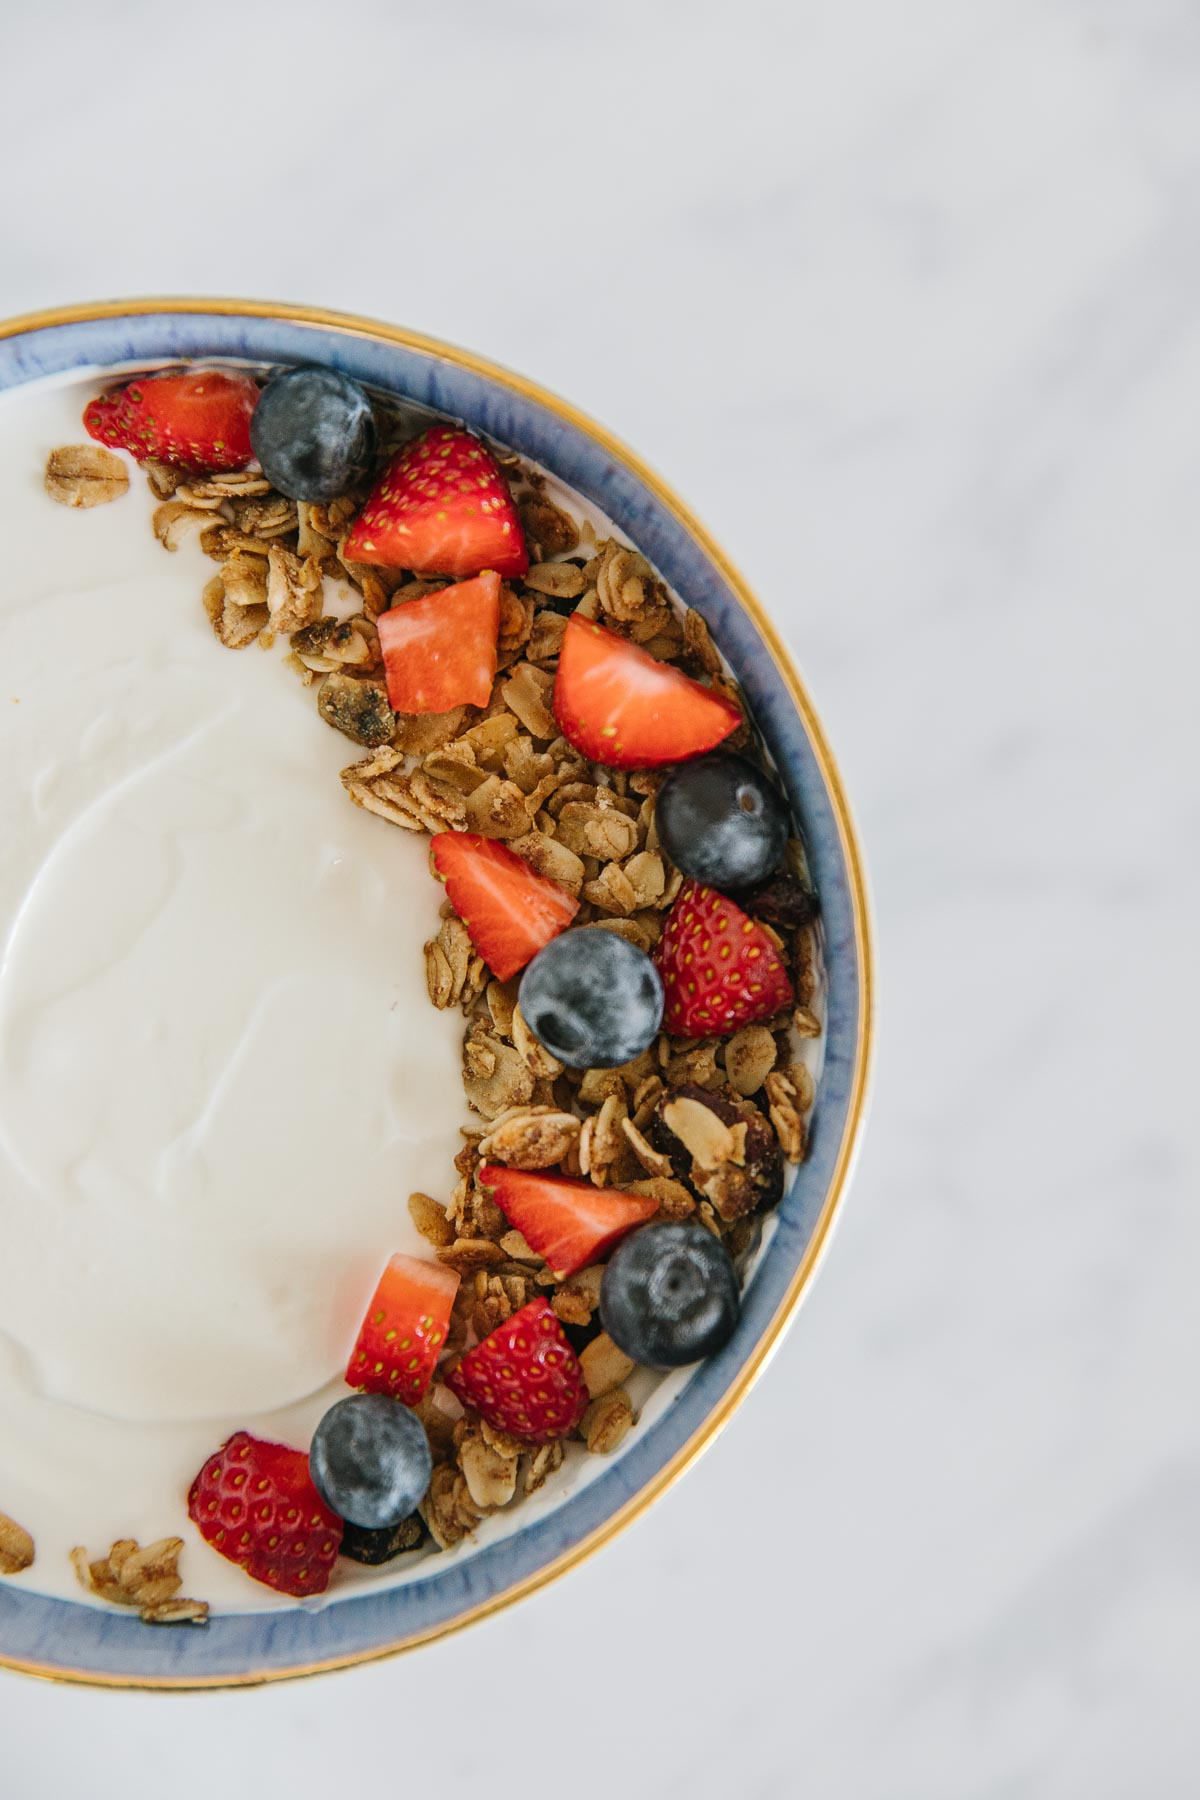 Half of a blue-rimmed bowl of yogurt with fruit and granola on it.